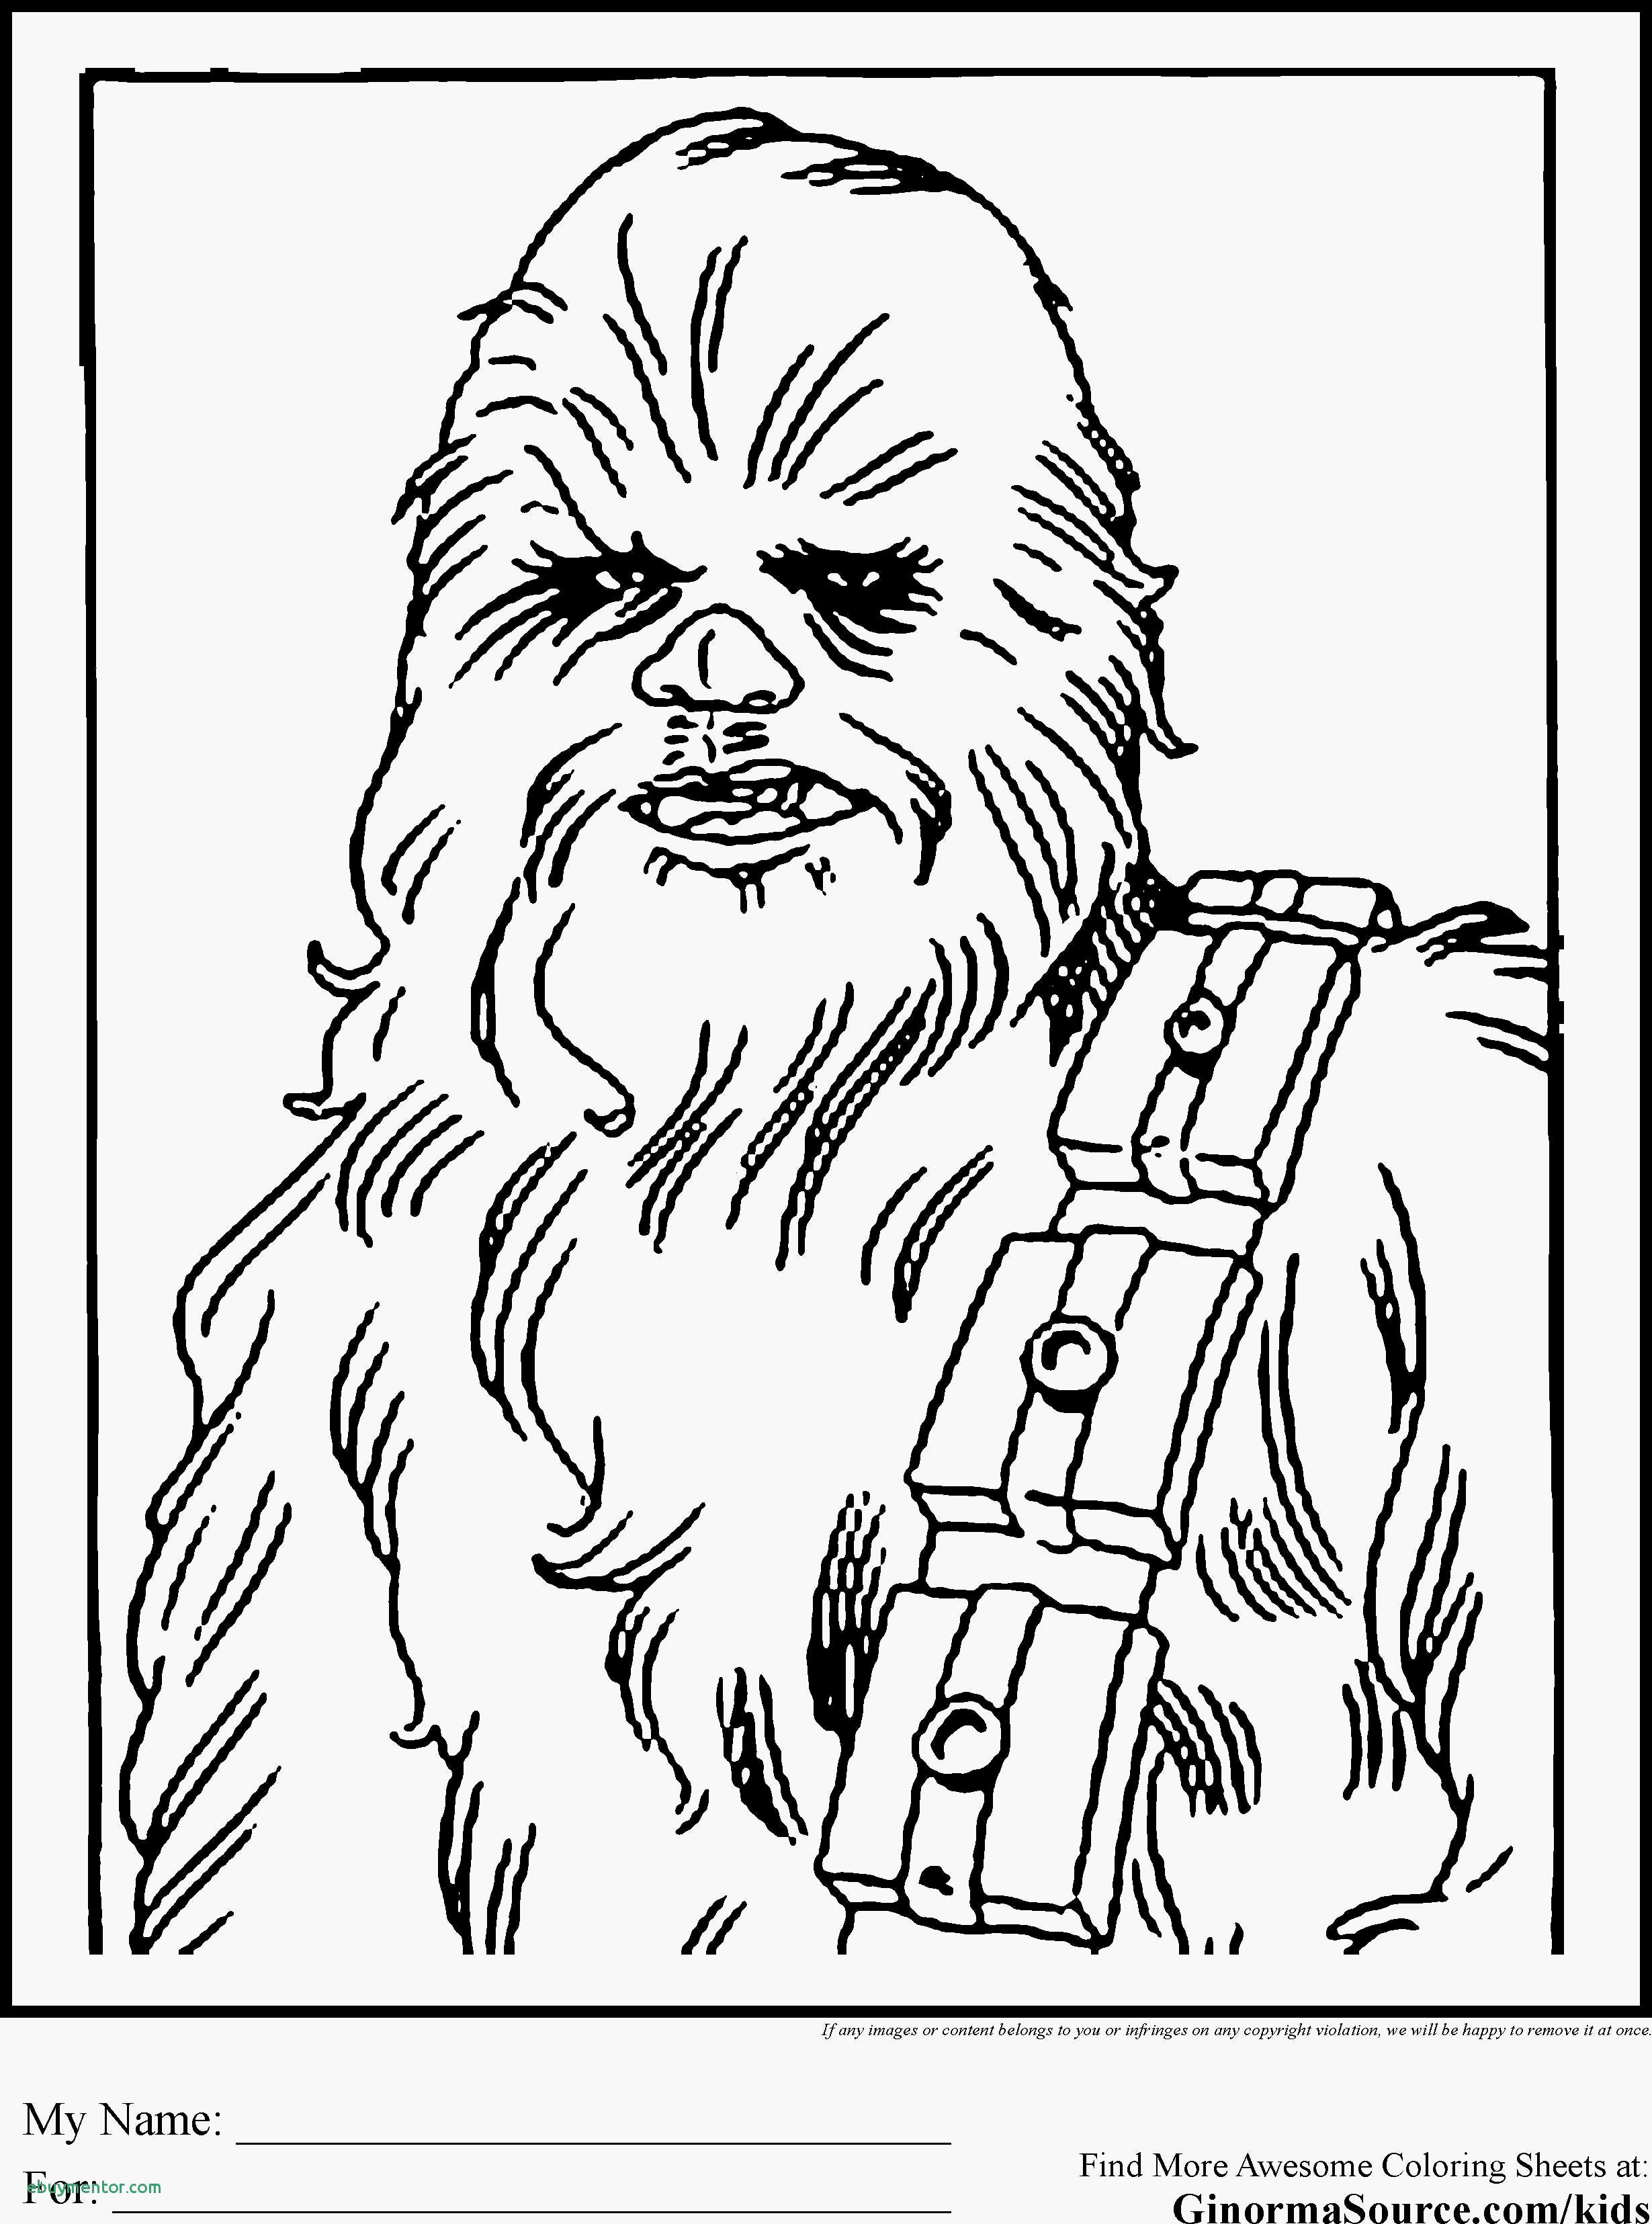 Christmas Coloring Pages Star Wars With 70 Legos Coloringpagess Bid